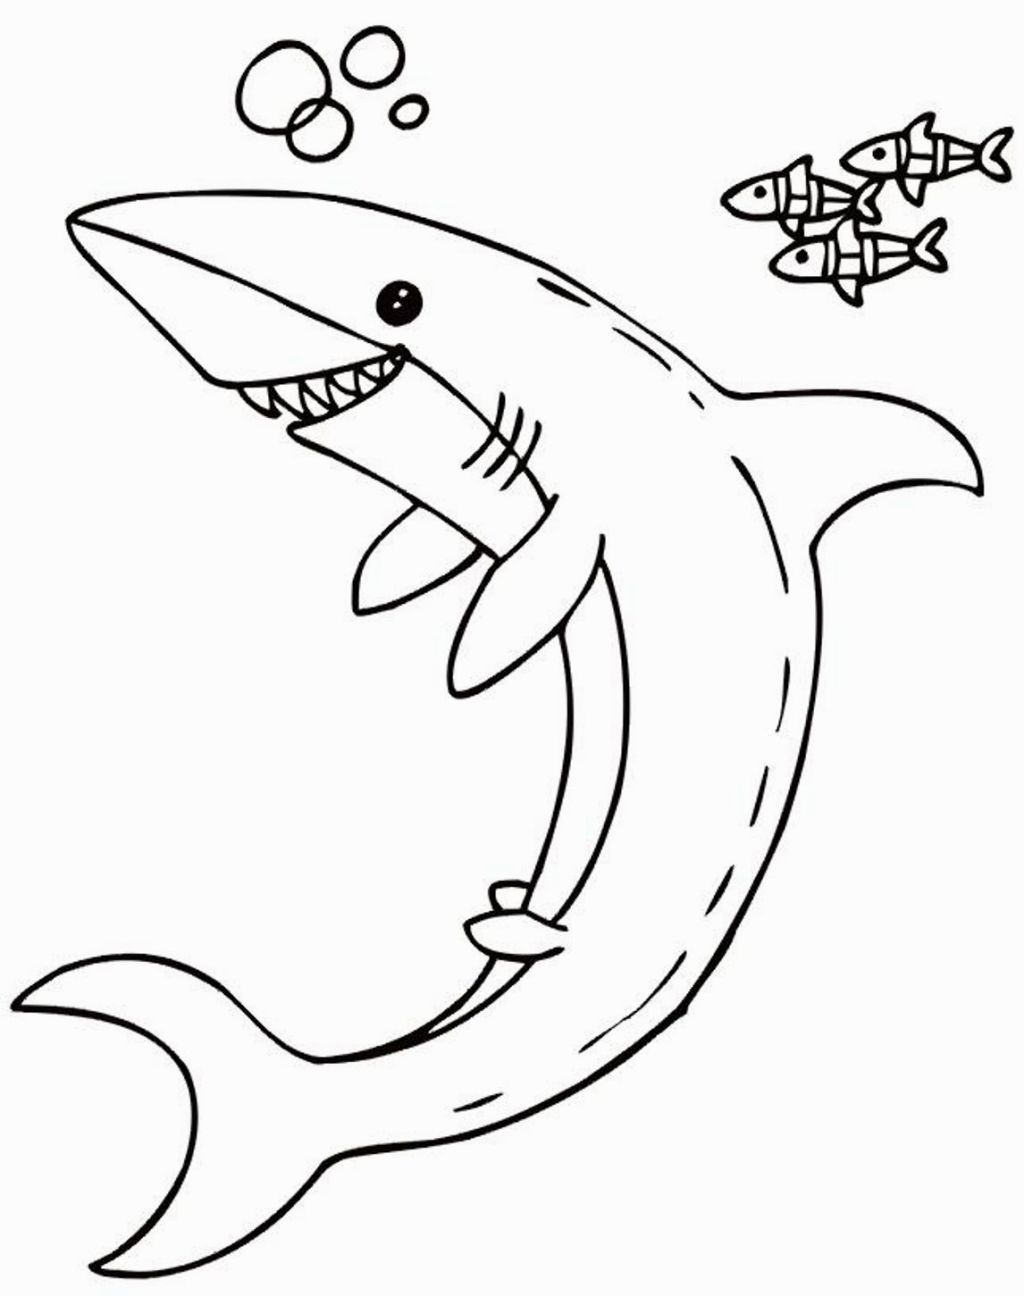 Shark Coloring Pages To Print Shark coloring pages